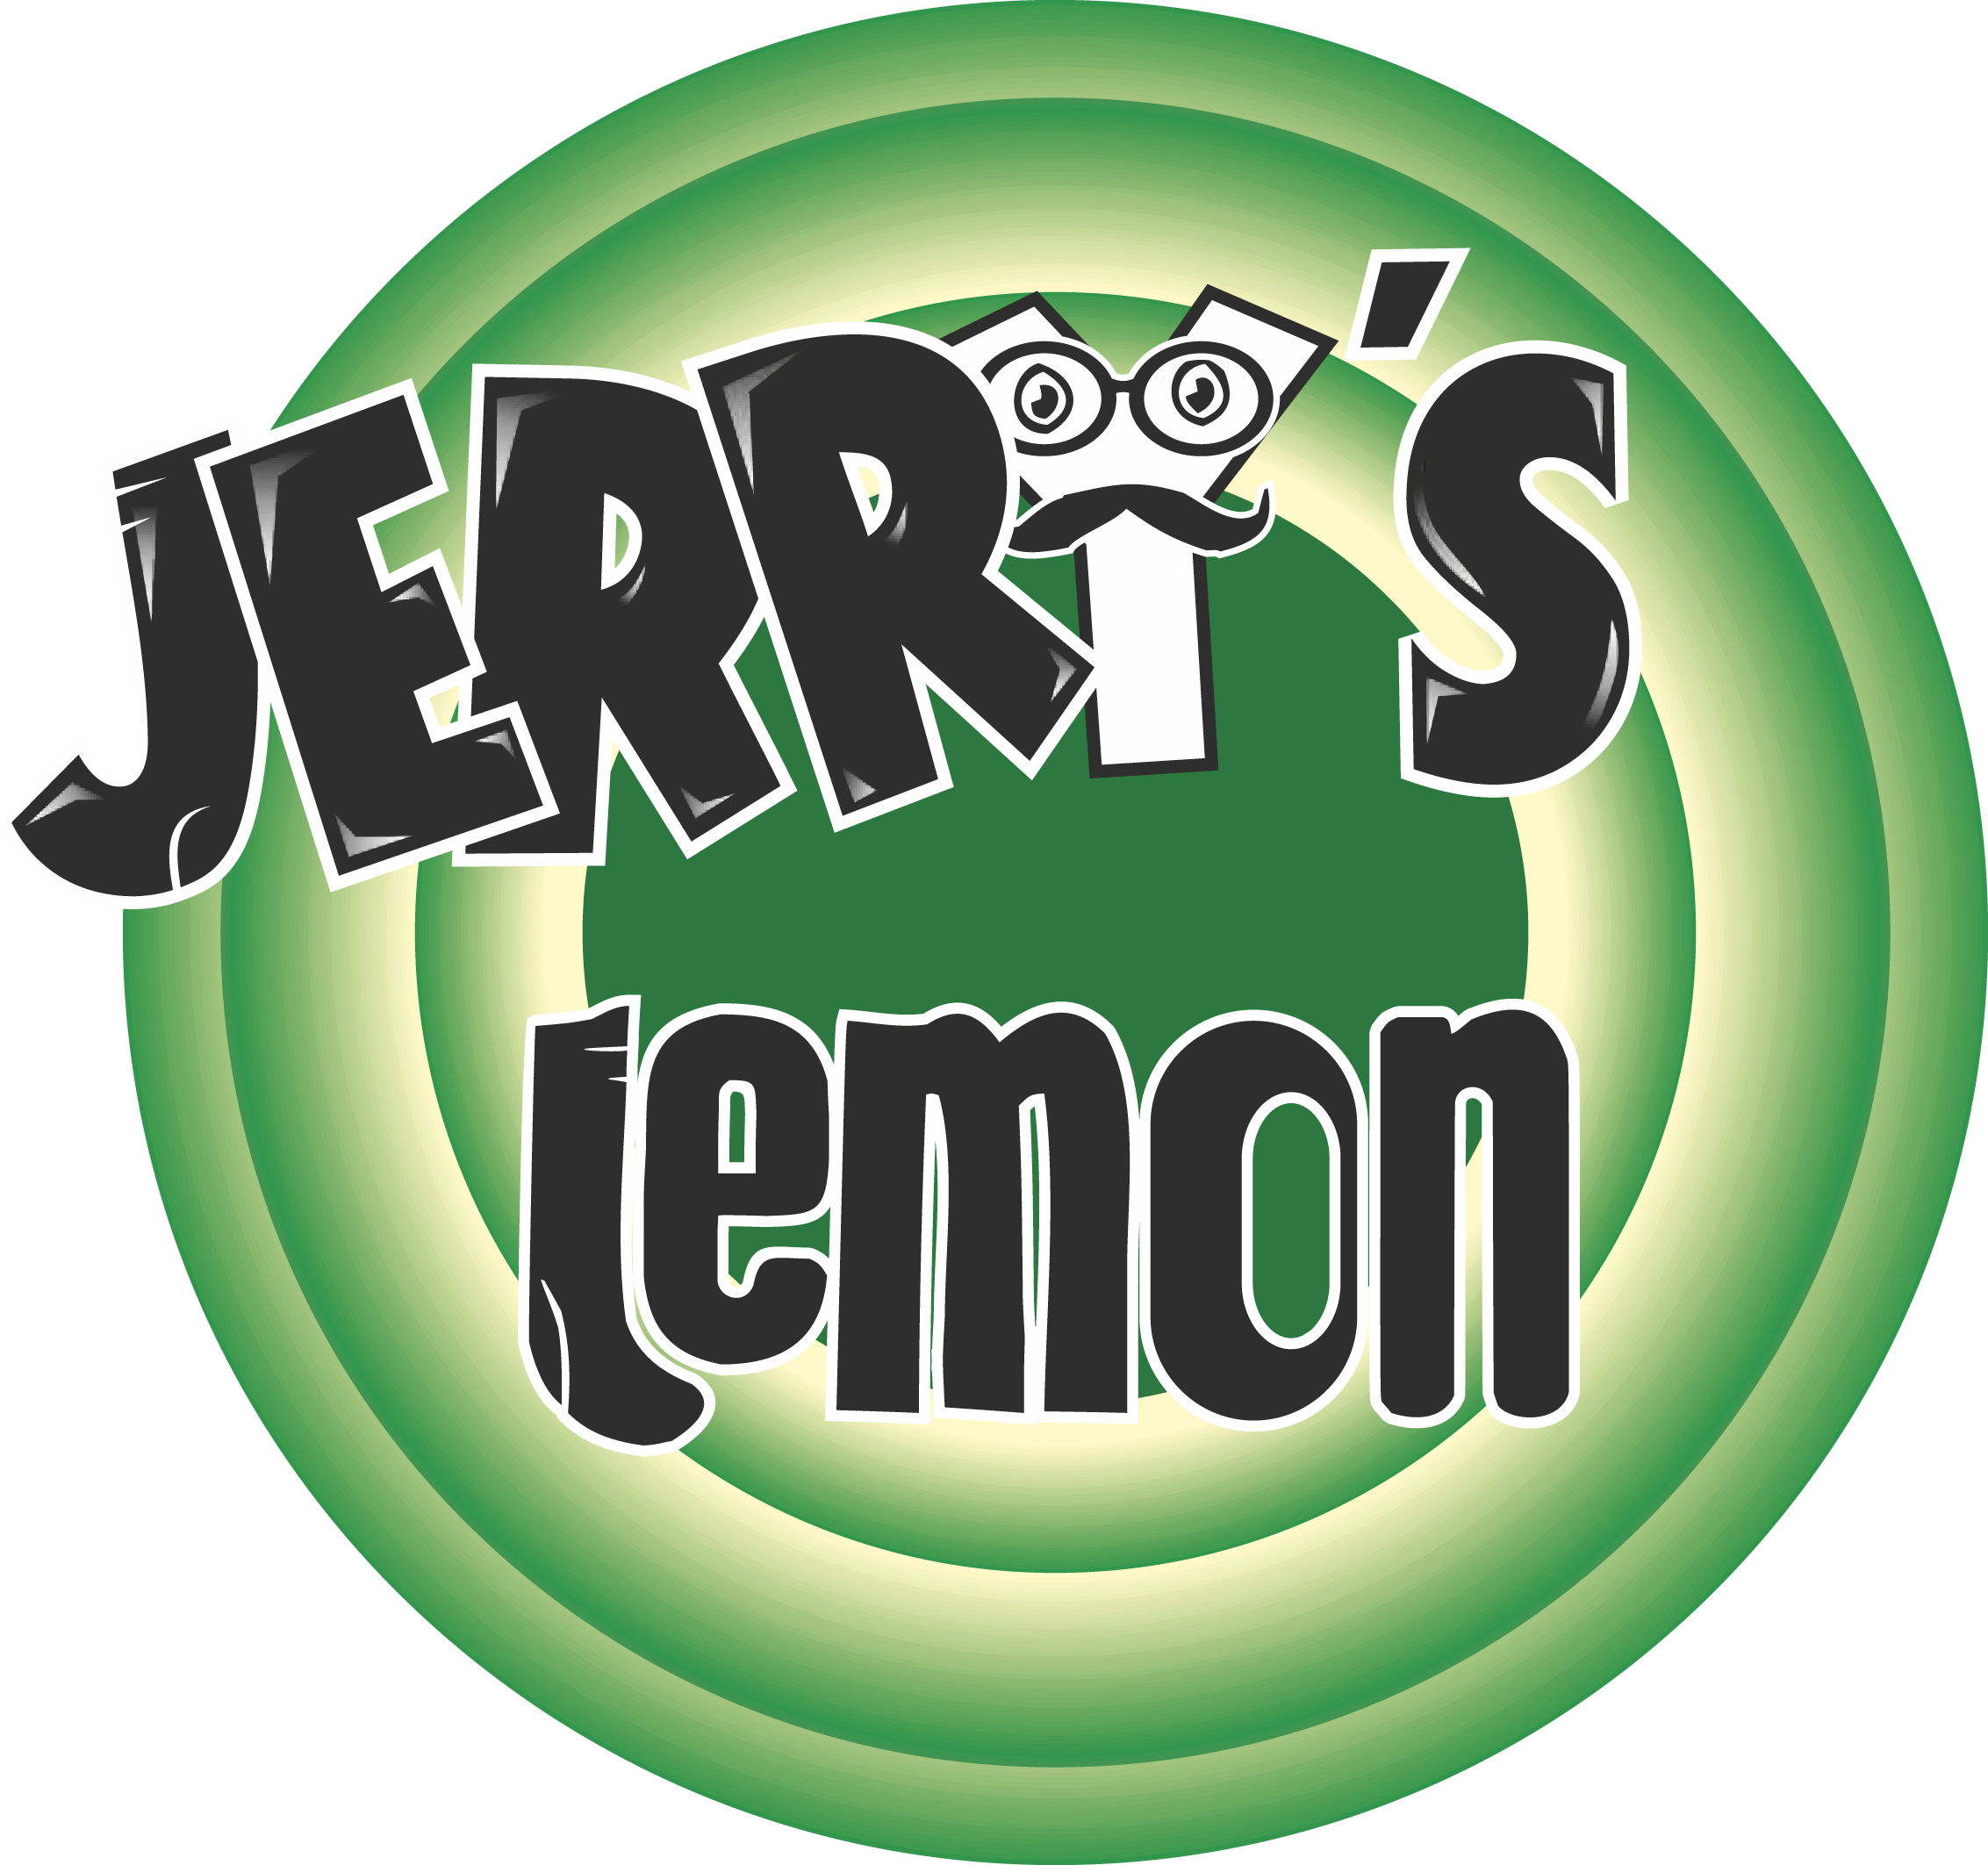 Jerry's Lemon